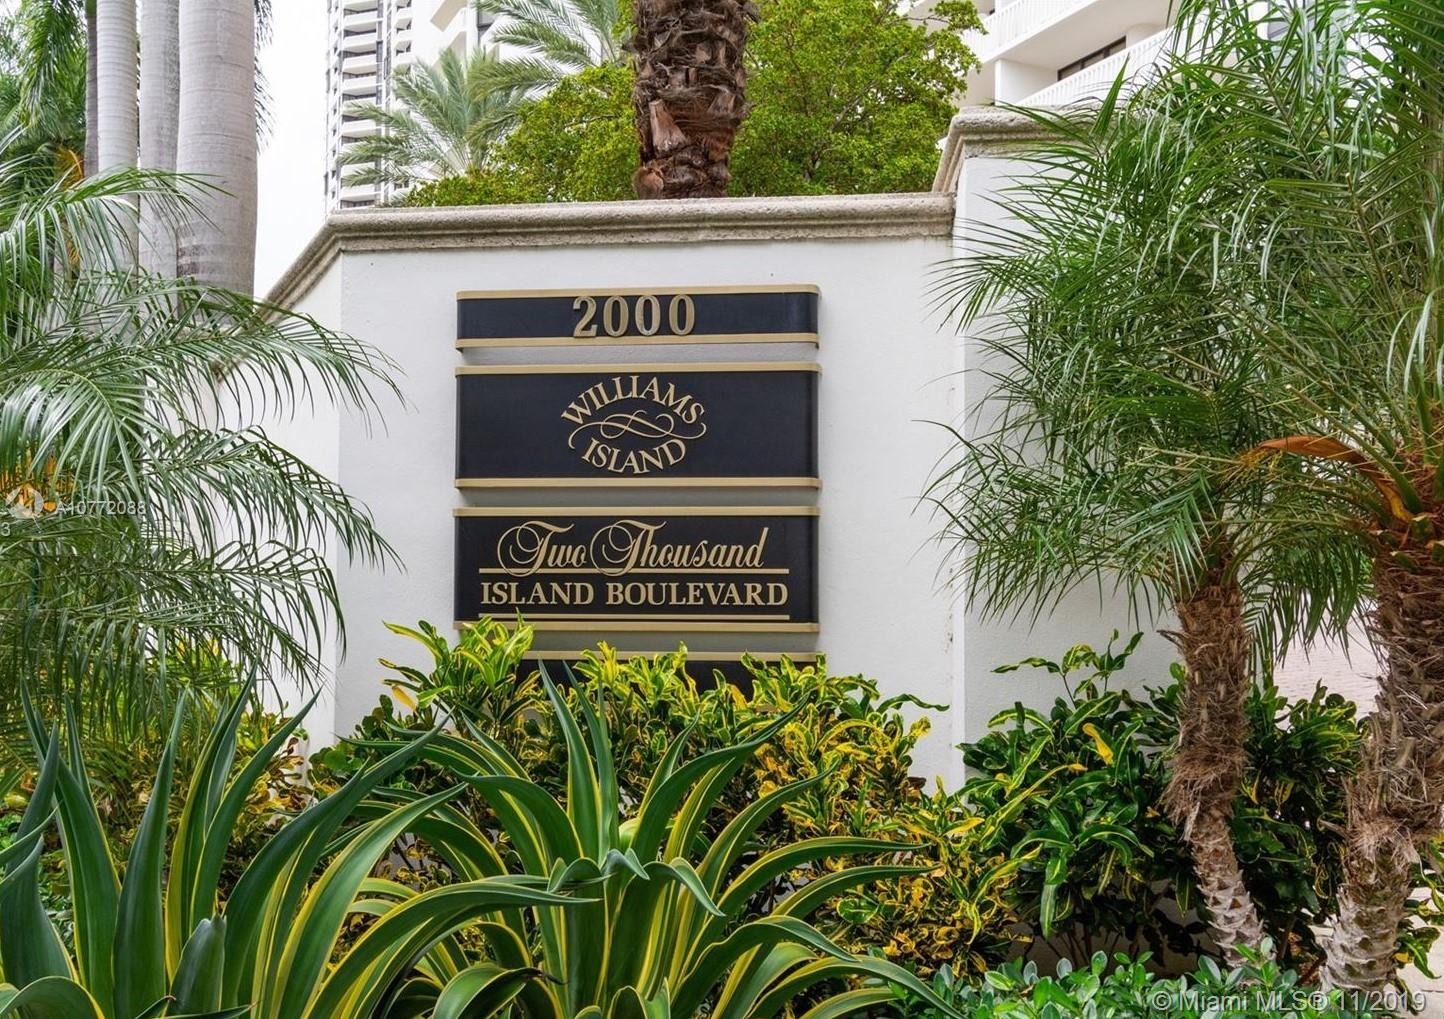 MUST SELL!  Fabulous Williams Island paradise with  luxurious lifestyle; breathtaking water and city views, bright and spacious split floor plan. 2bed/2 bath/1 guest bath; California walk-in closet; washer&dryer; 1covered parking space included and 1 storage space. Complementary valet parking.  27,000 sqft Spa, Fitness and Wellness Center; Island Club; Island Grill Restaurant; Pool Bar; Children's Park; 12 clay tennis courts and 1 hard cushioned court, all illuminated for evening use; House of worship. Marina that can accommodate Yachts up to 160 ft. Full Service Marina; Dog Park; Brand new lobby and common areas. seller very motivated. send your offers!!